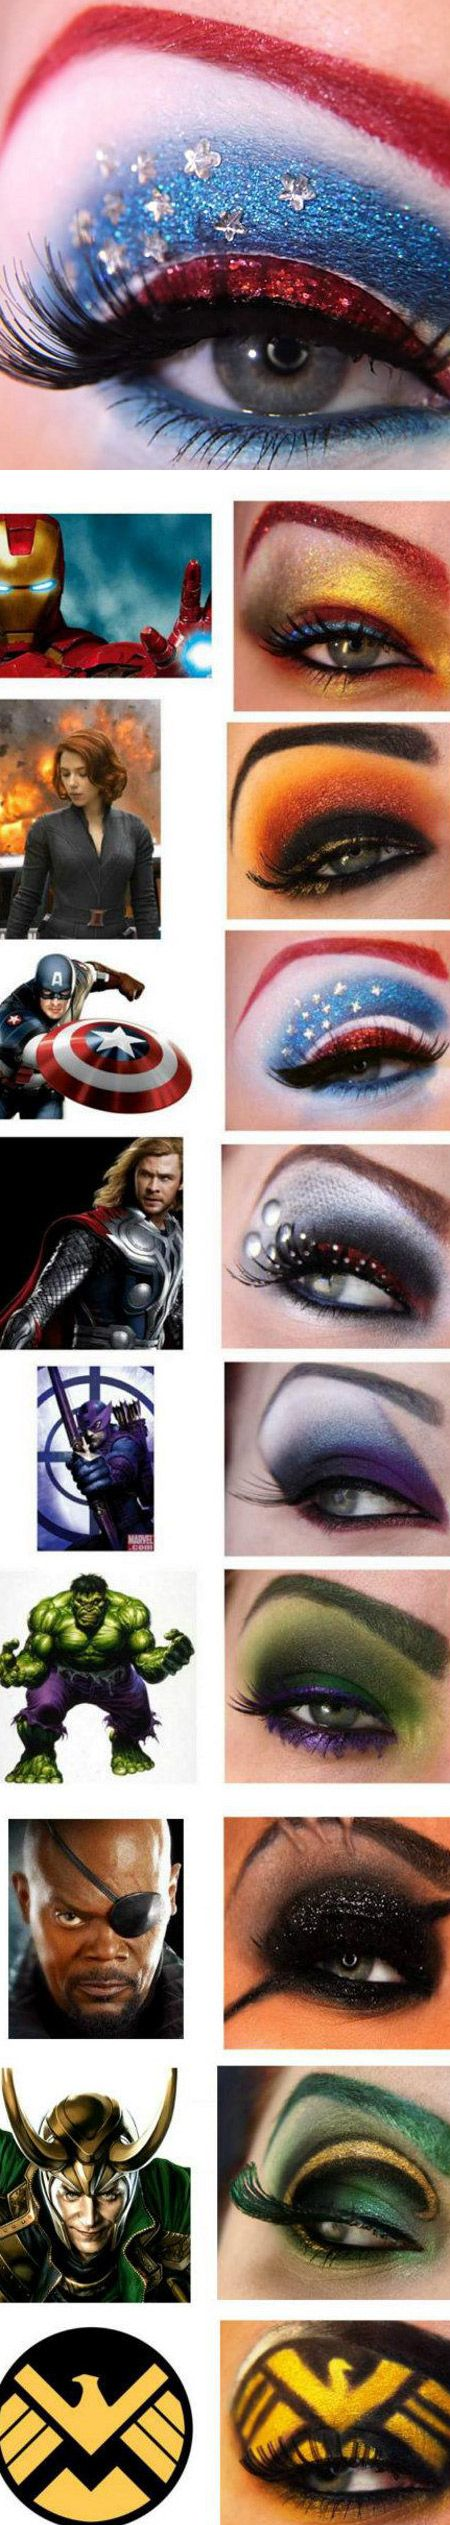 Avengers themed eye makeup by a make up artist called Jangsara from